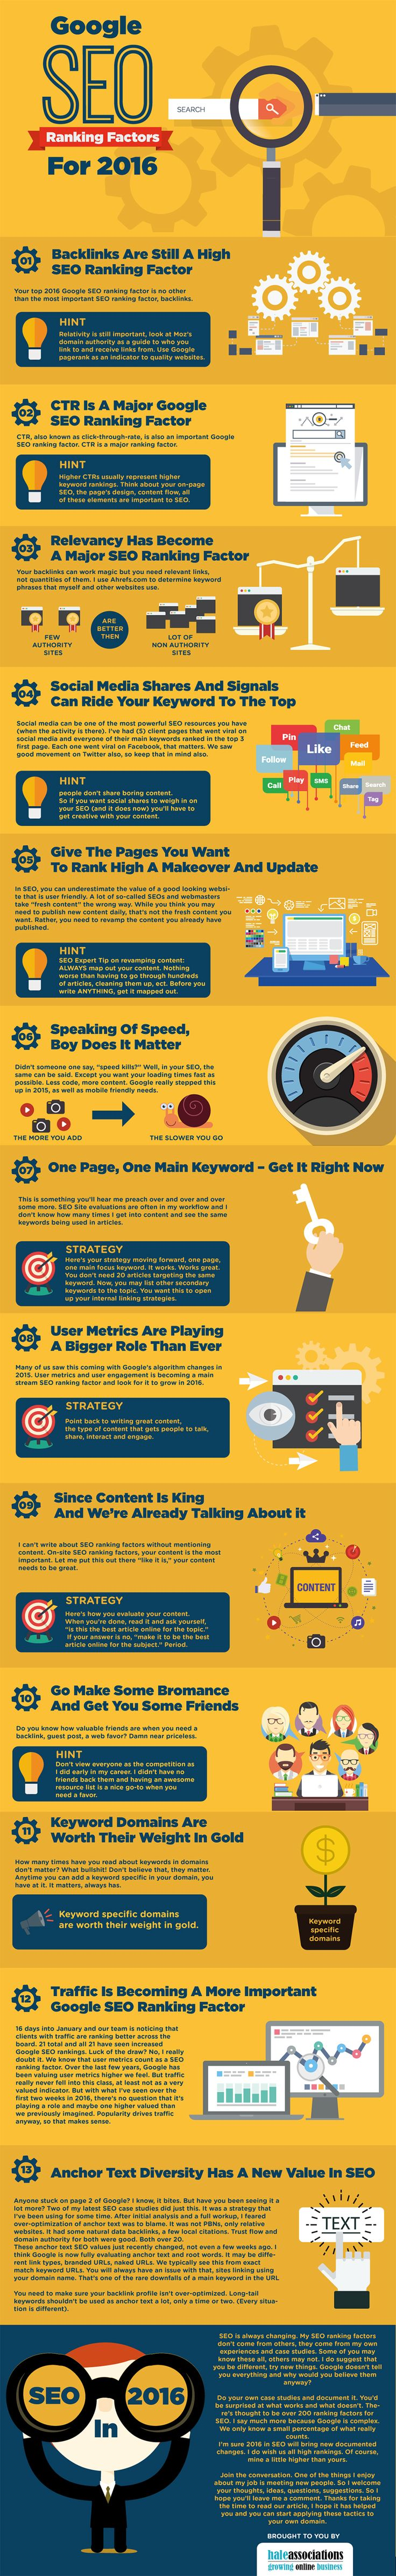 #SEO in 2016 The 13 Ranking Factors You Should Concentrate On #Rankingfactors #Socialmediamarketing